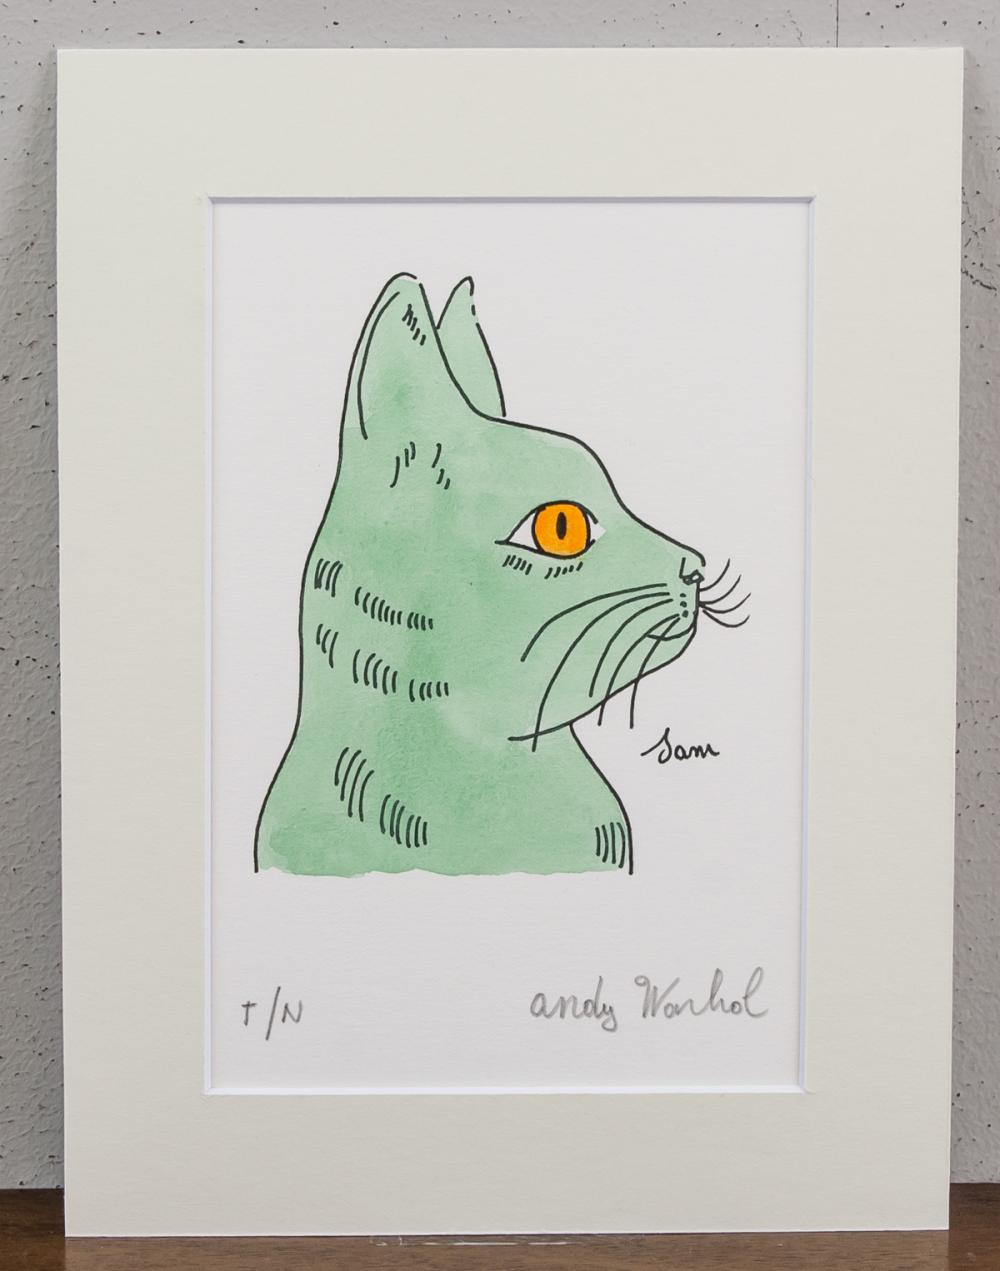 Lot 238: Andy Warhol American Pop Art Signed Ink on Paper